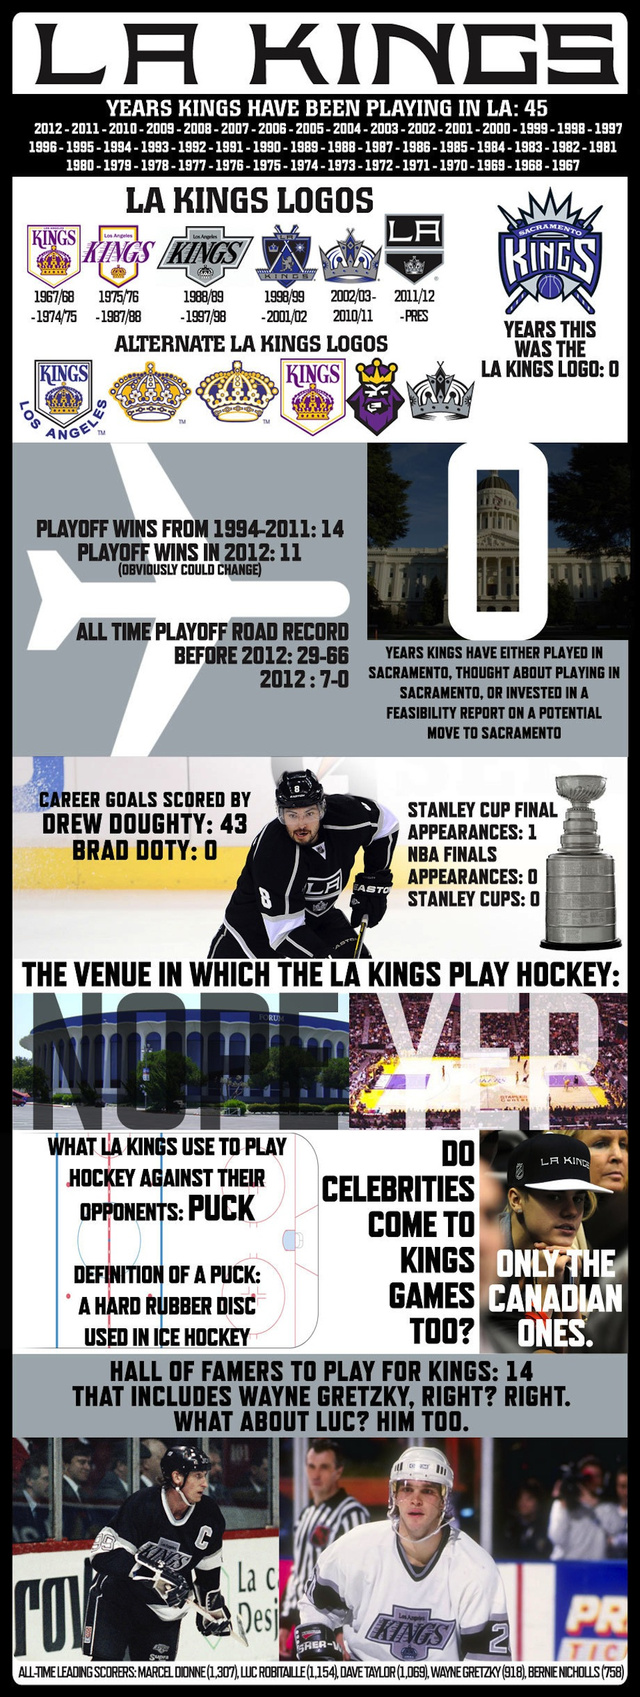 The L.A. Kings Created A Handy Infographic So The City's Media Will Know Who They Are